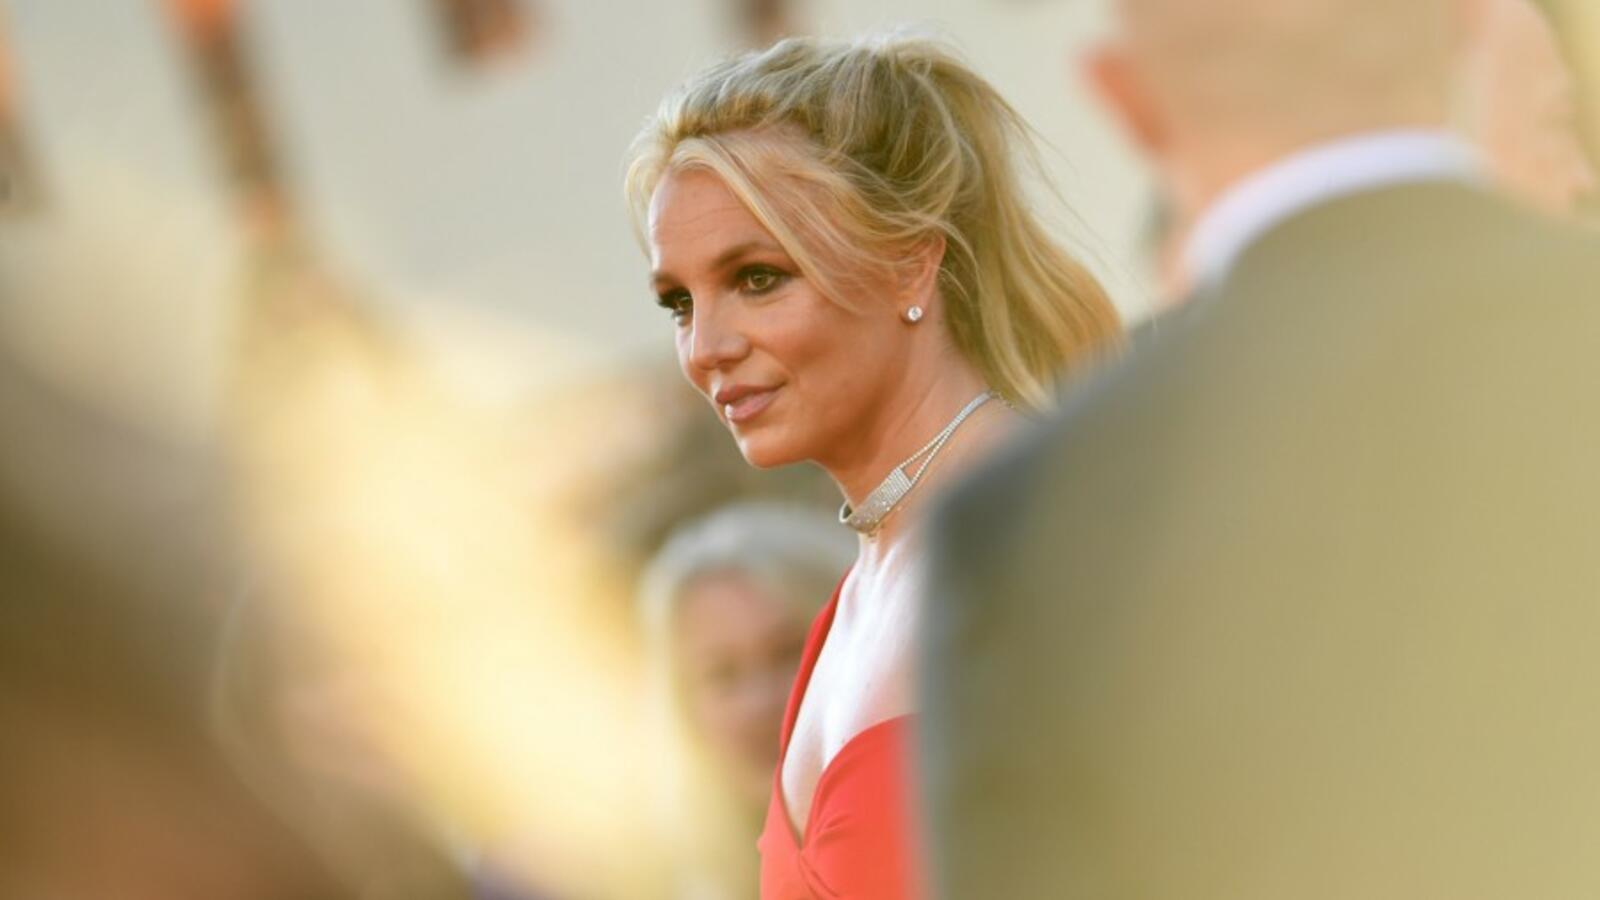 Britney Spears' Phone, Bedroom Bugged By Conservatorship To Track Activity